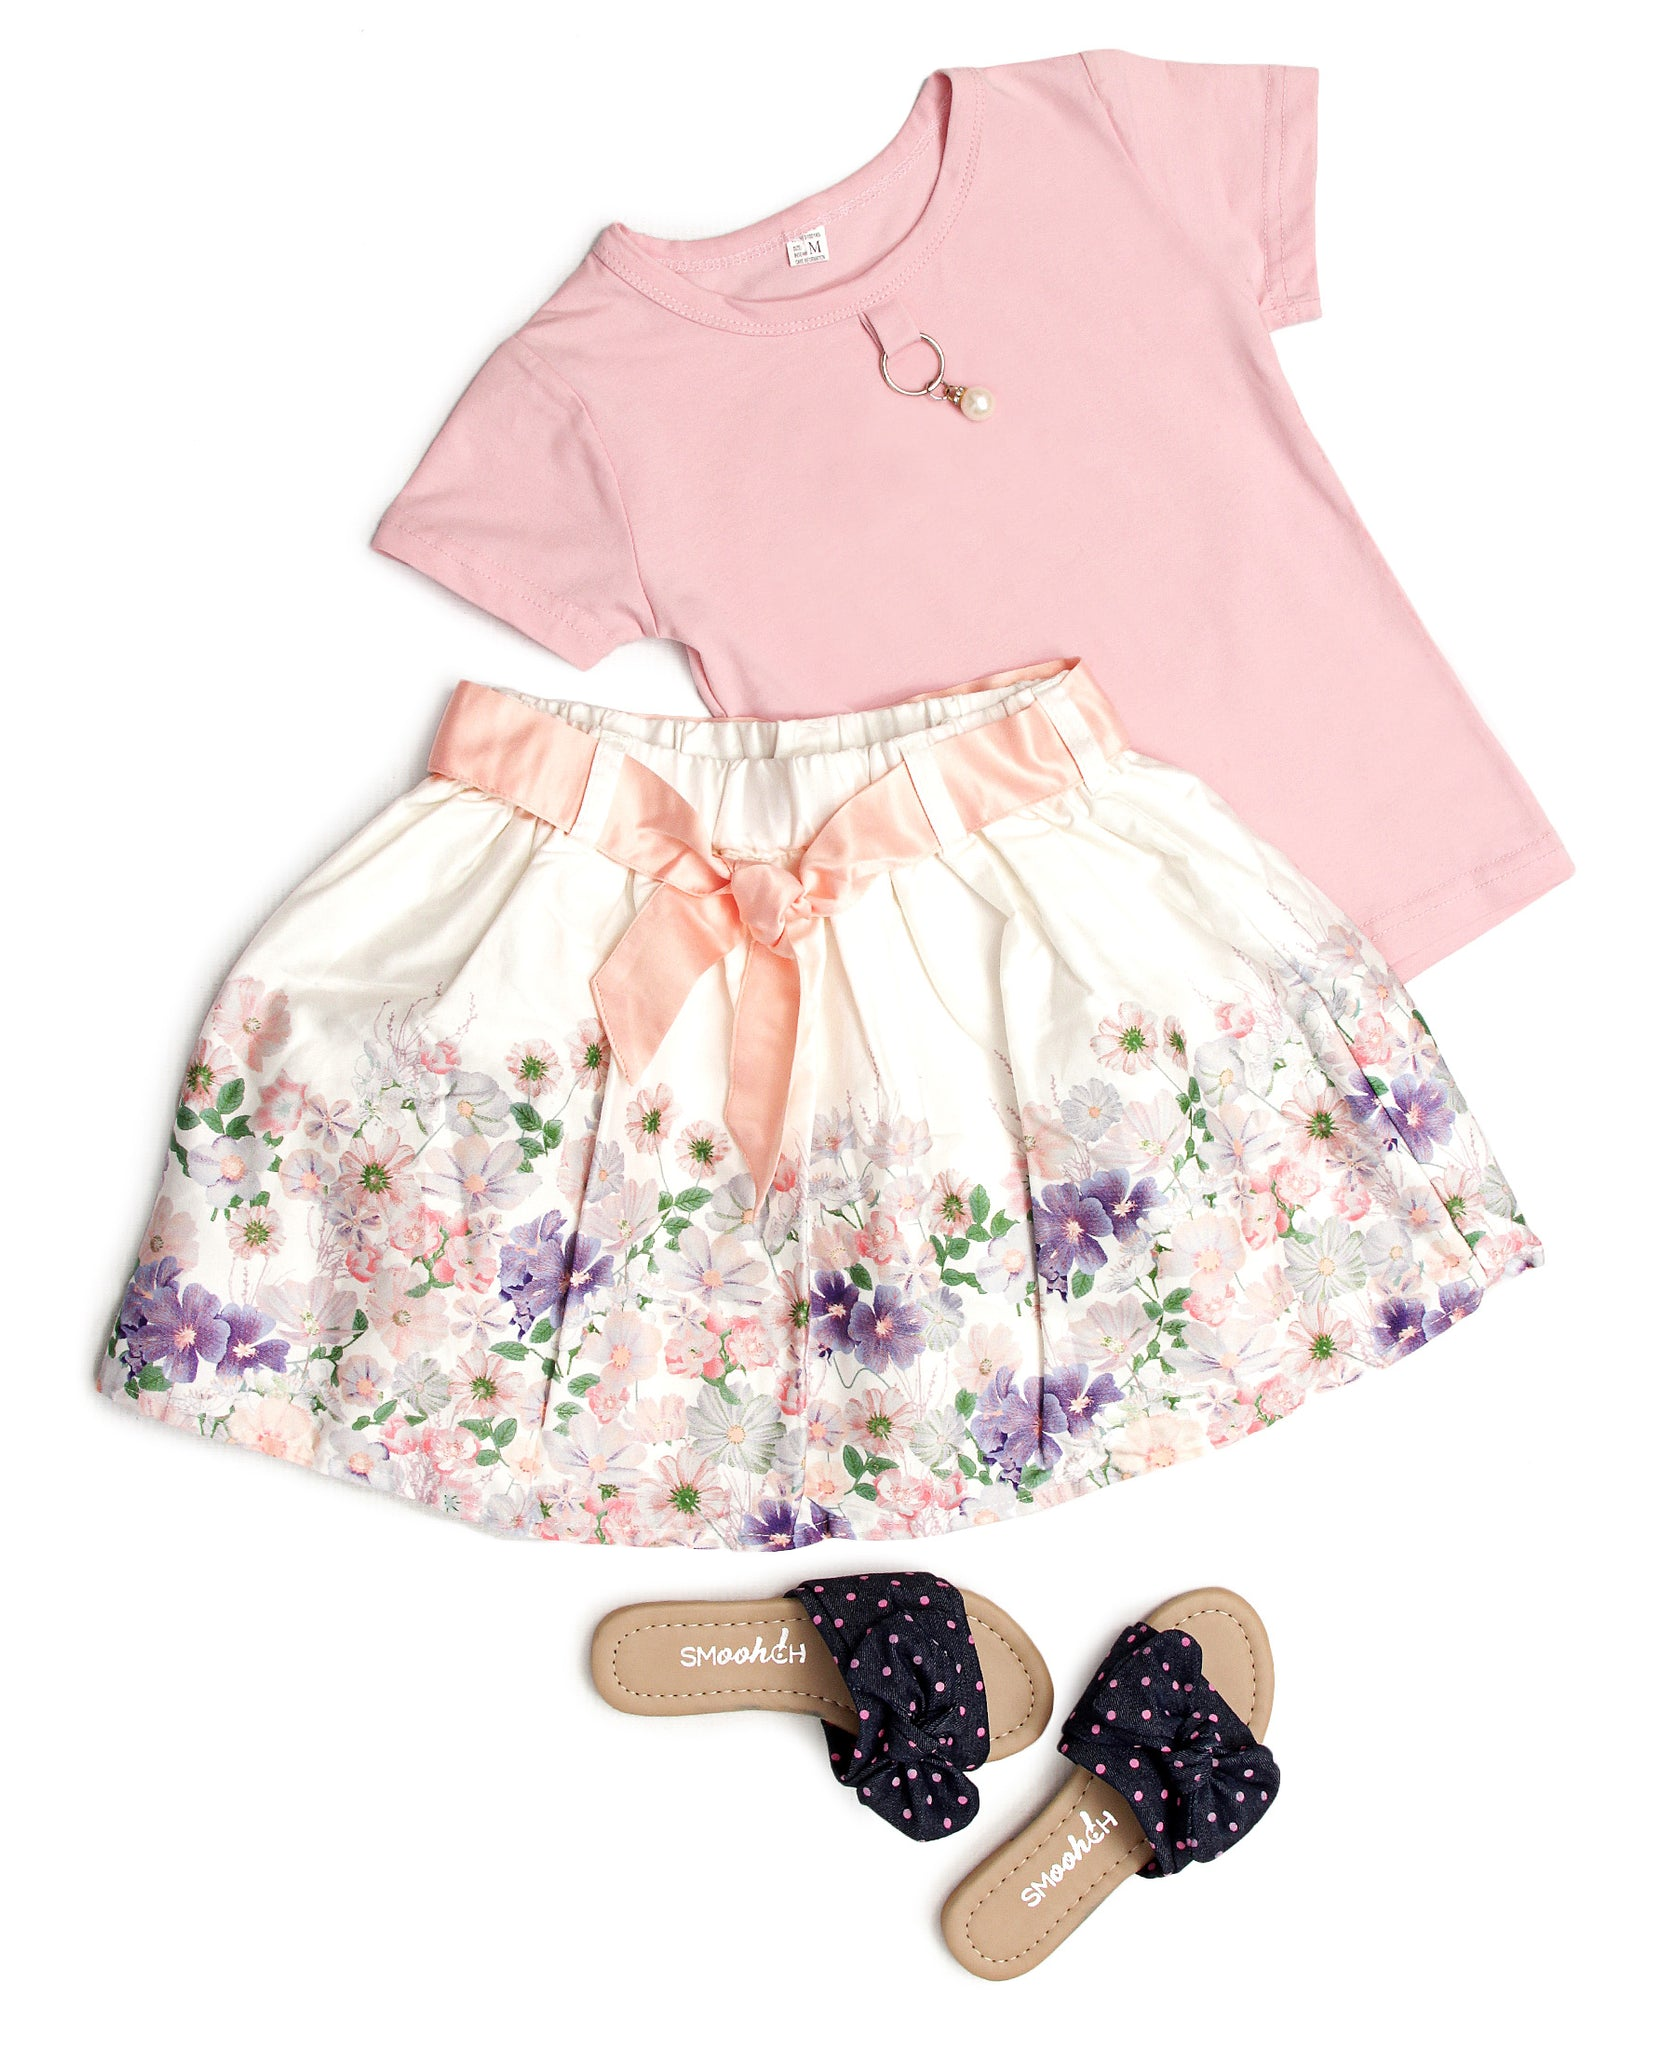 Girls Floral Skirt - White